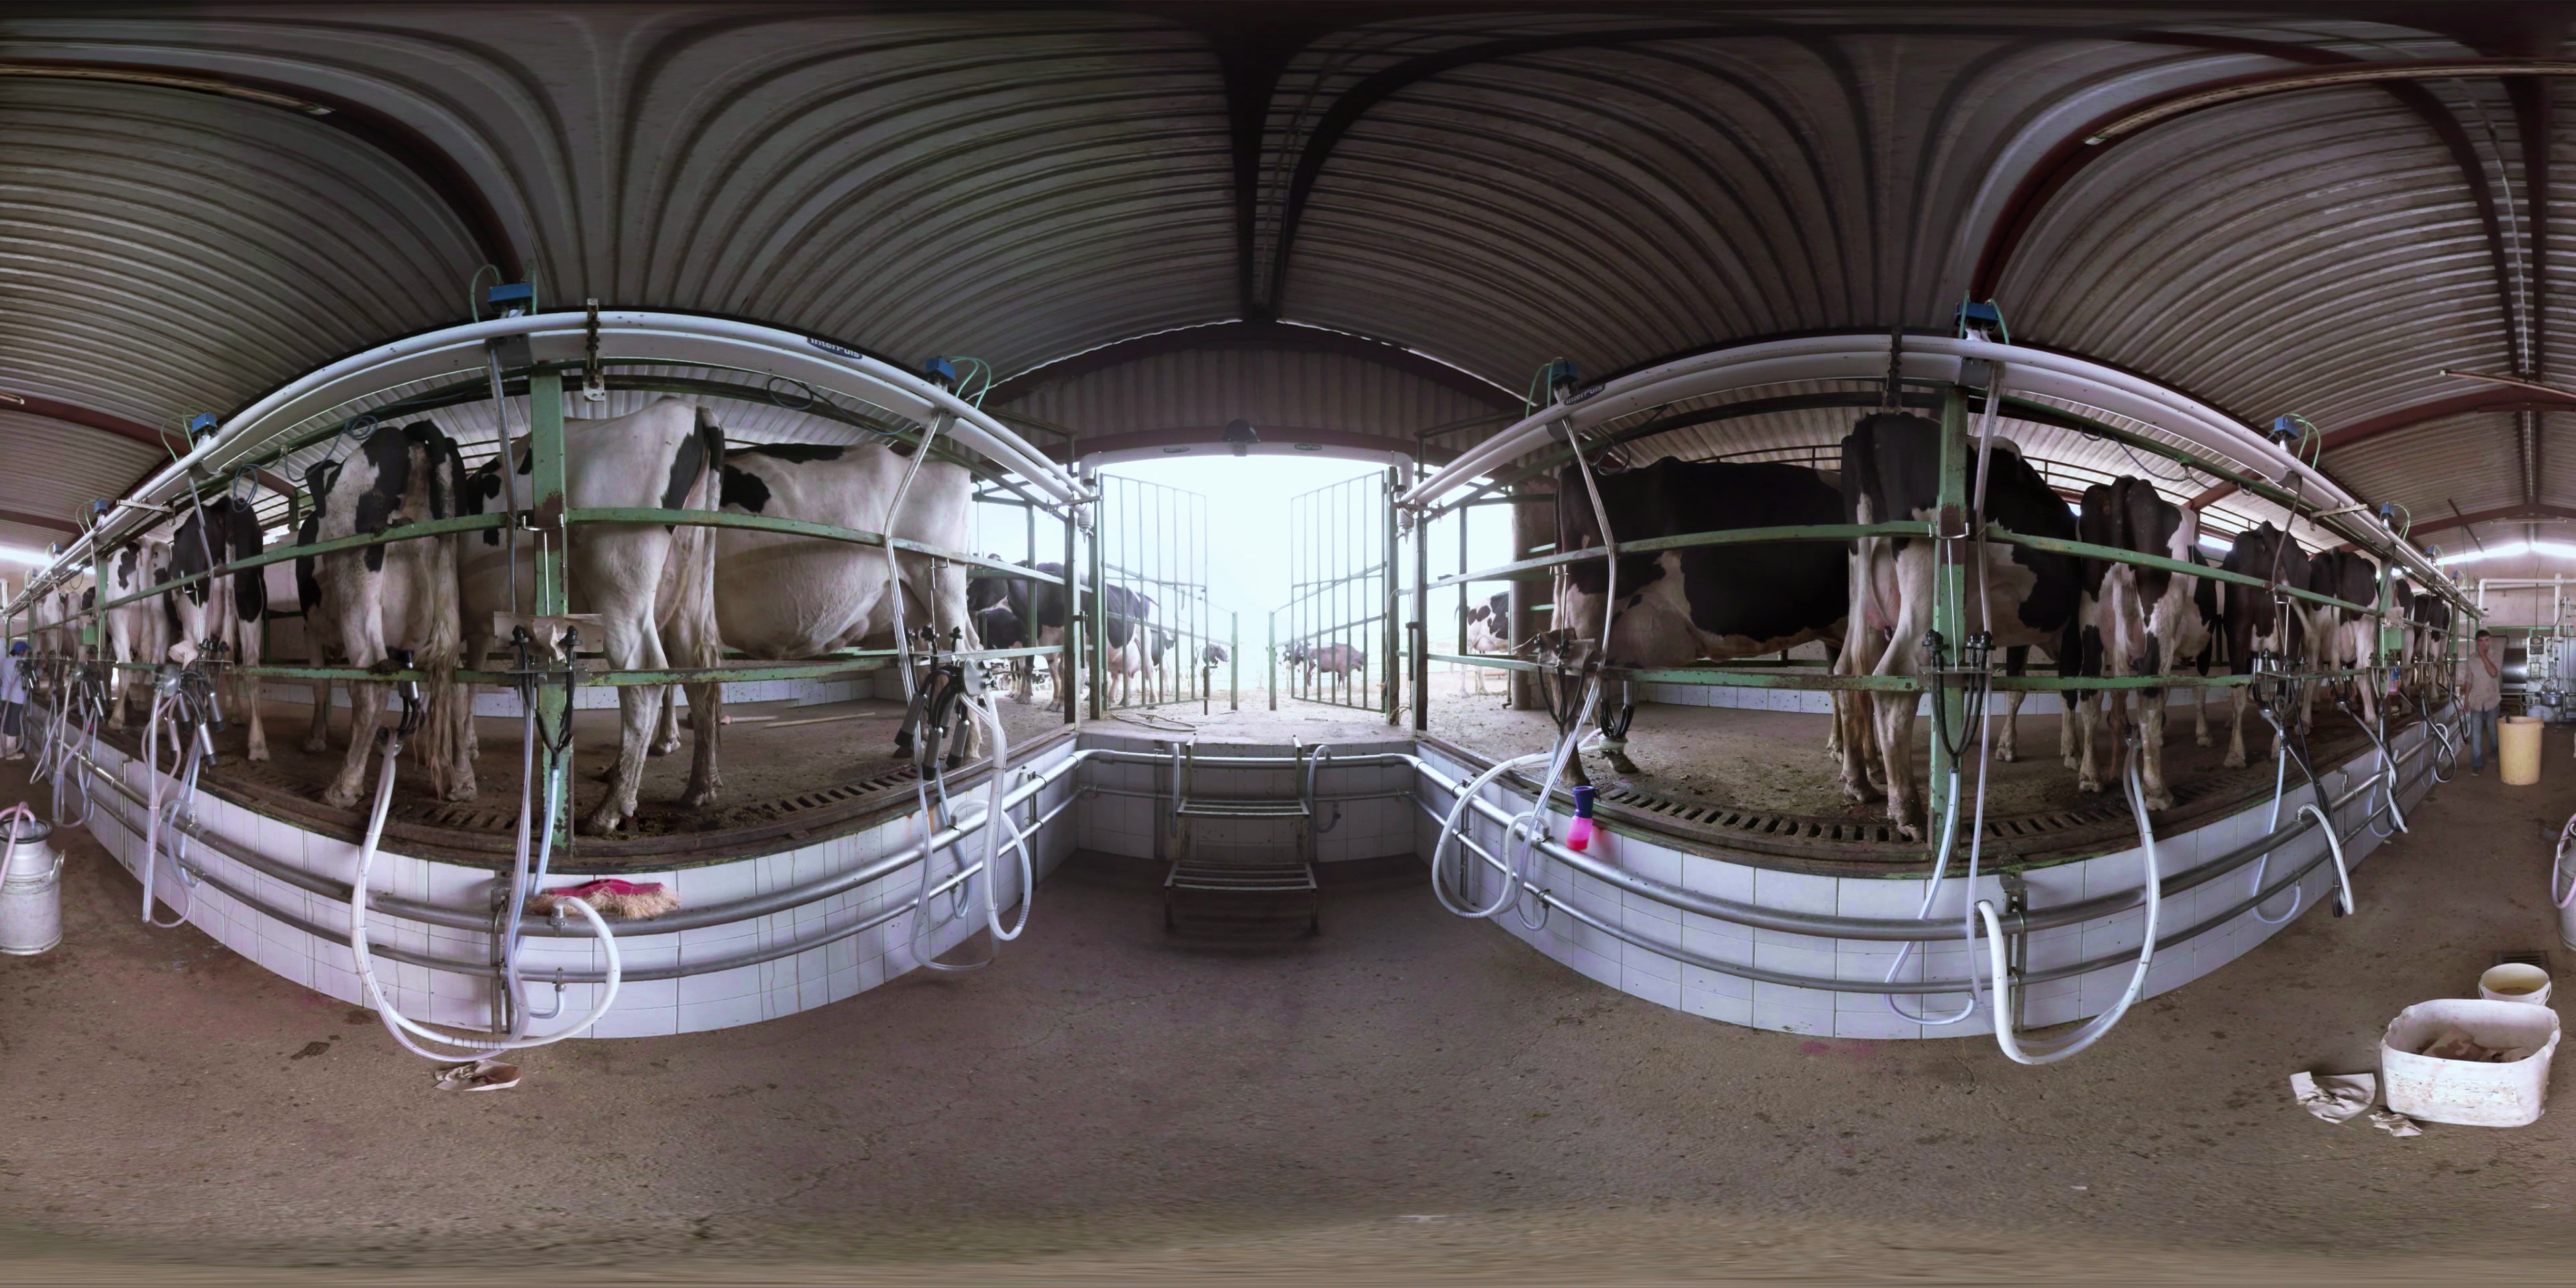 Shocking First Person Video Shows Disgusting Way Cows Are Slaughtered moo ving pictur 61541